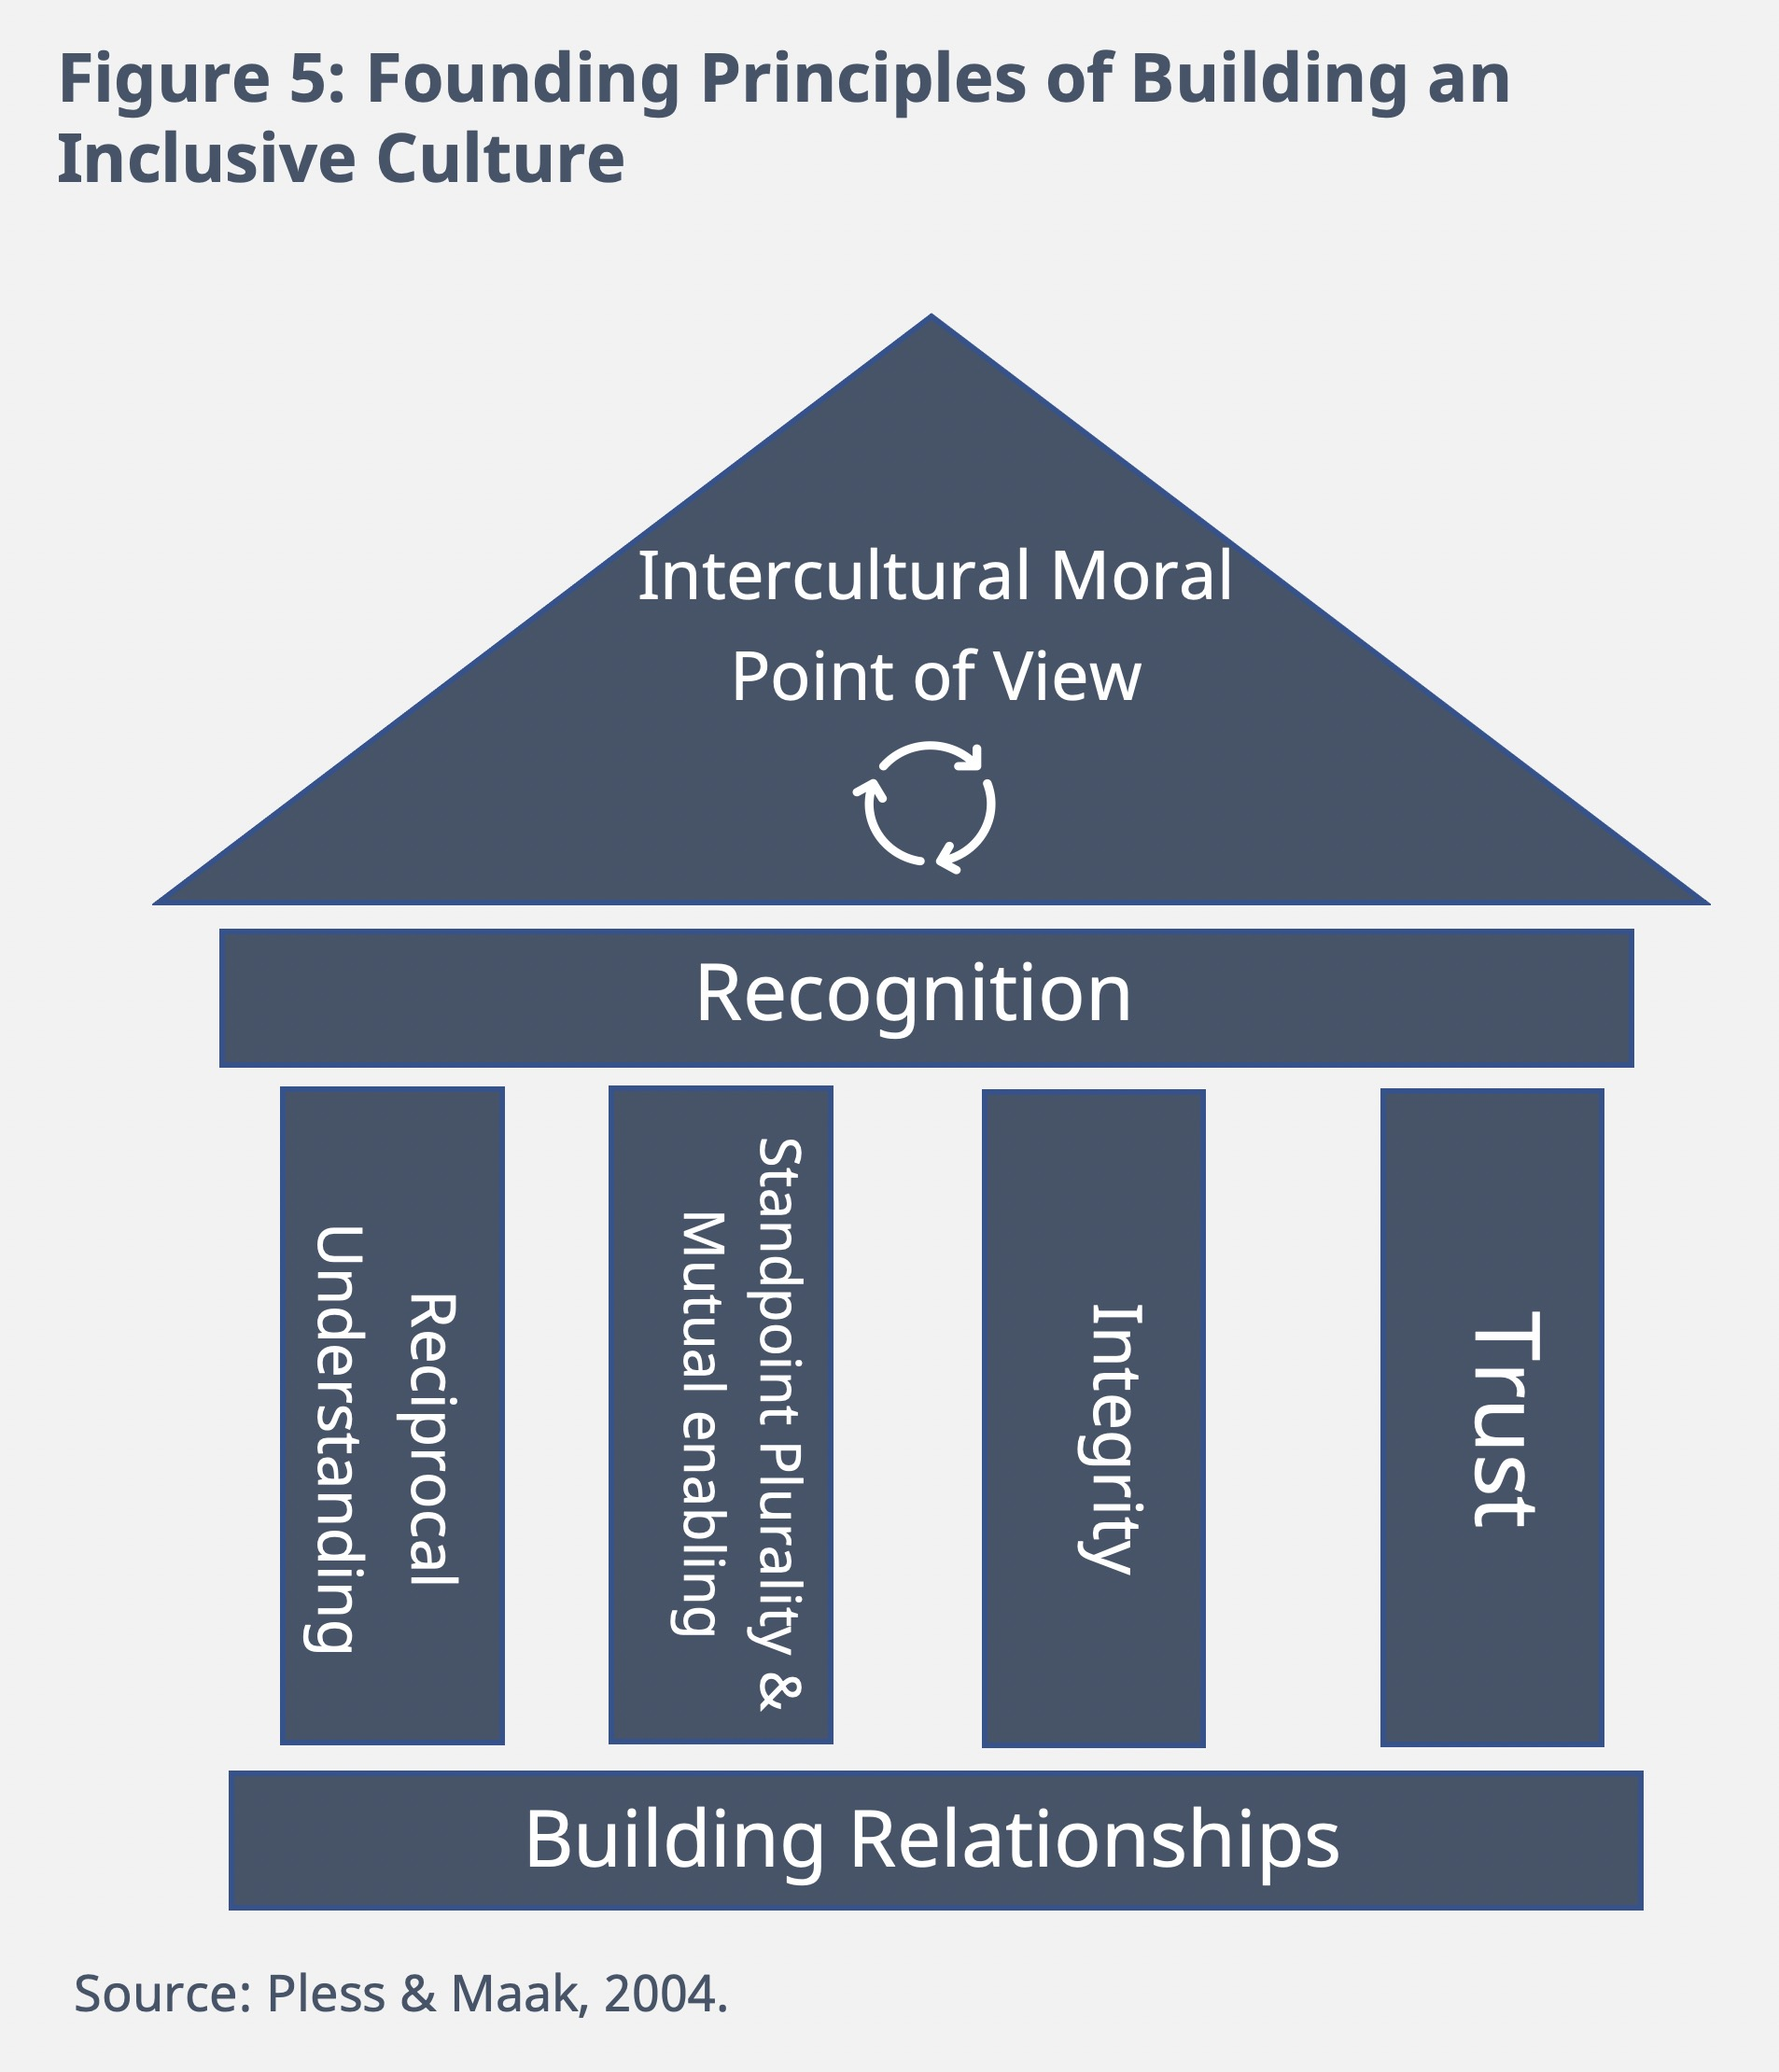 Figure 5: Founding Principles of Building an Inclusive Culture